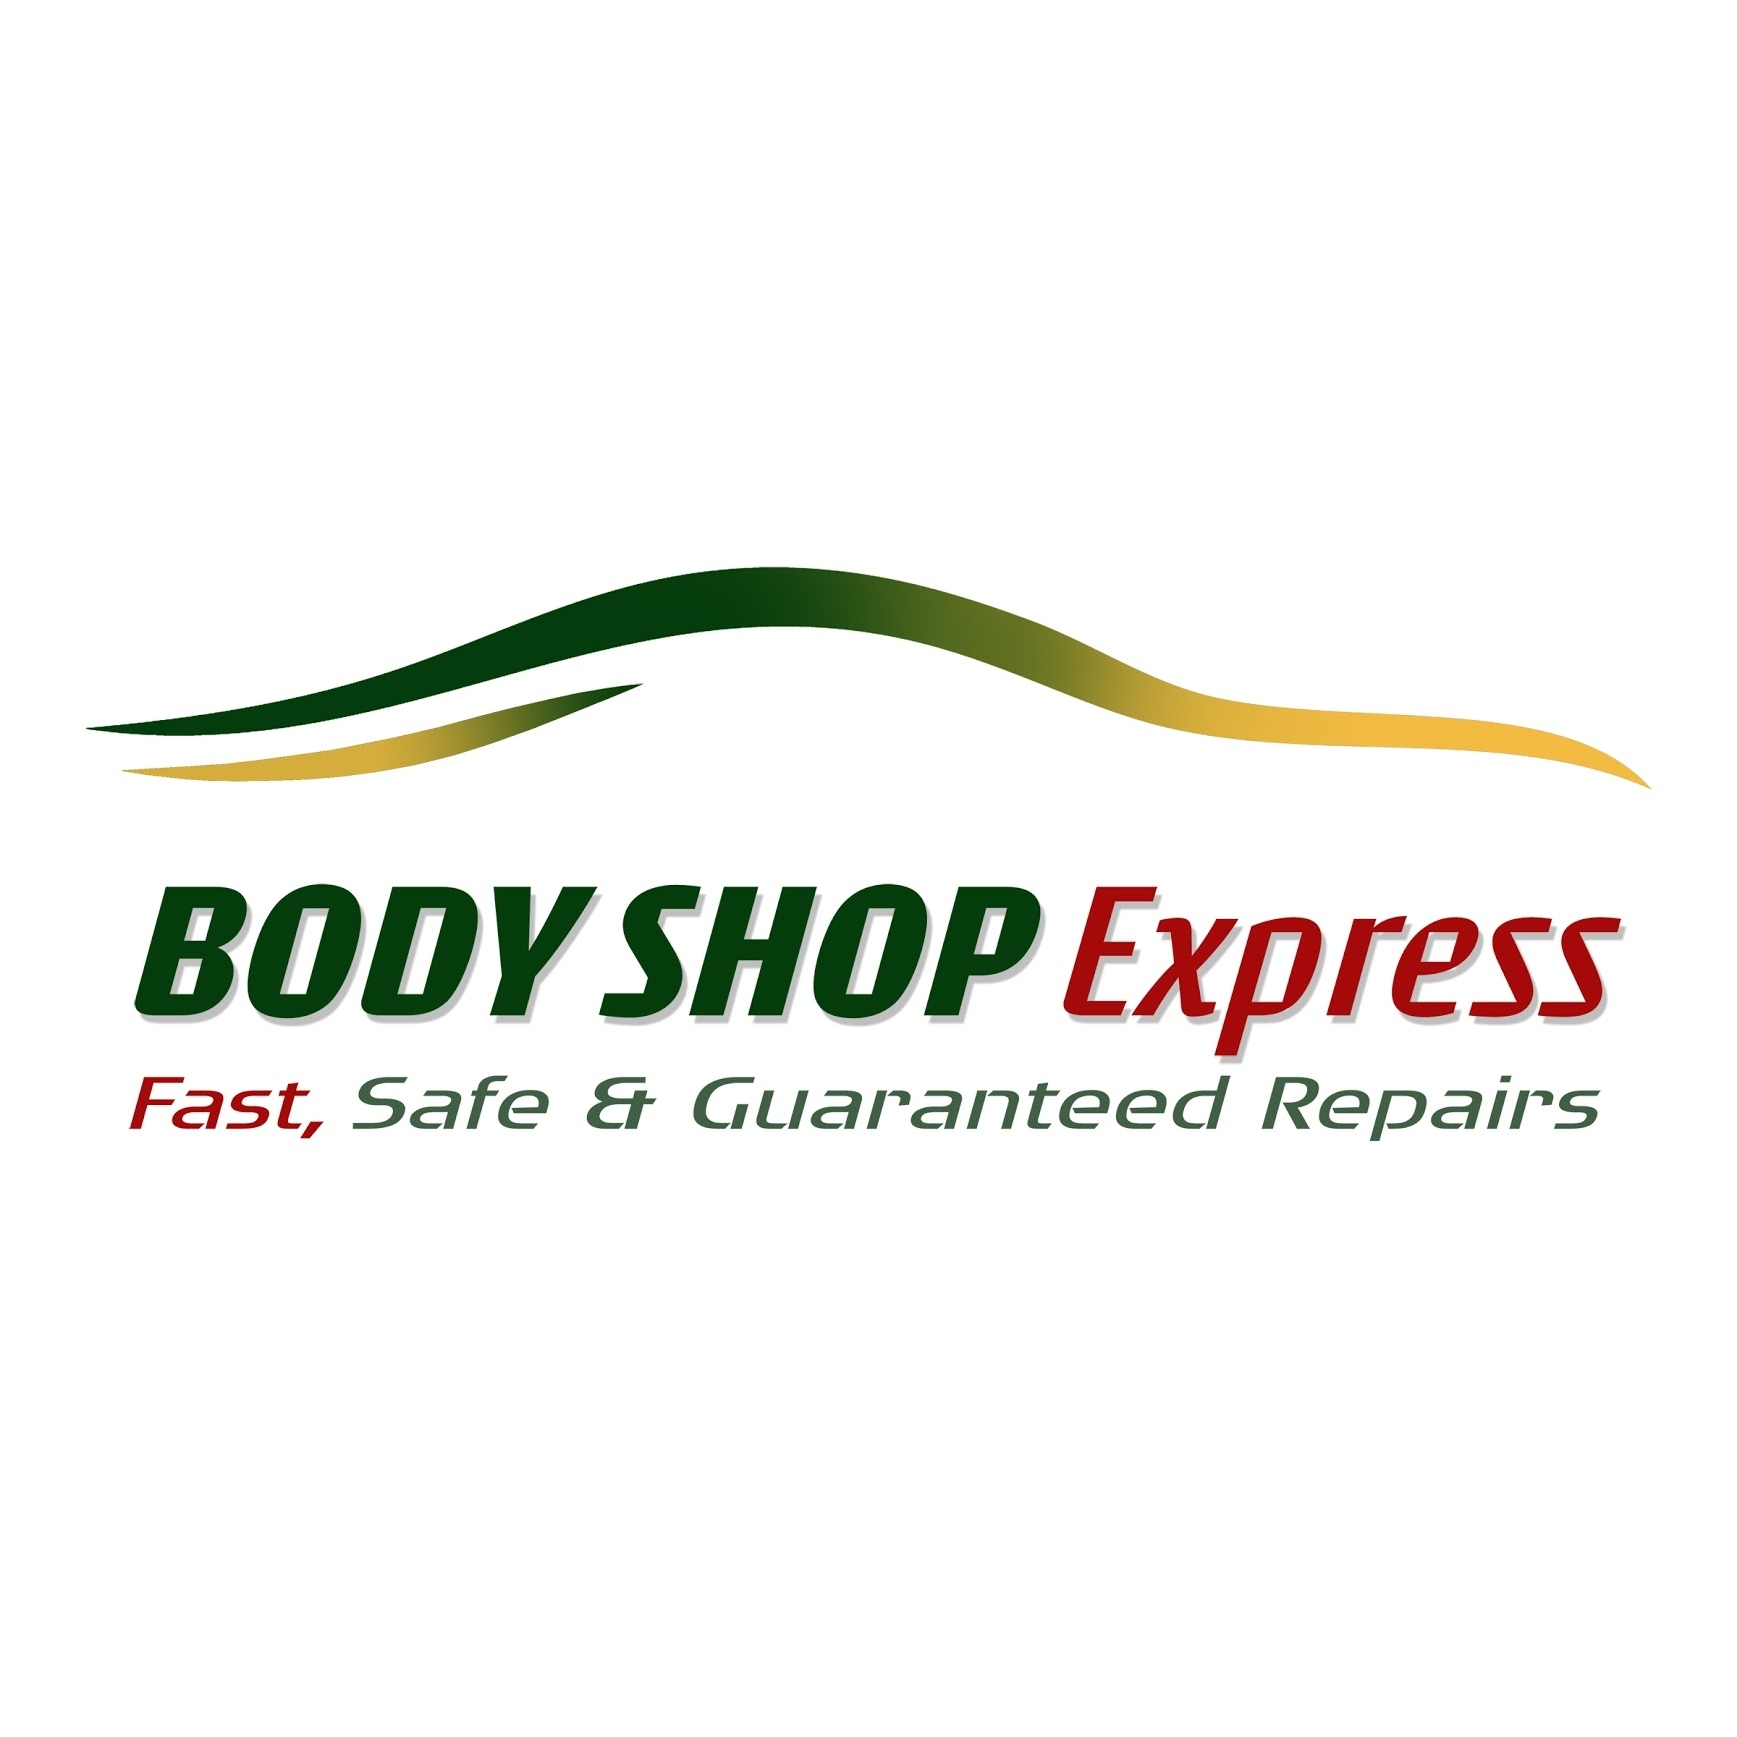 Body Shop Express LLC